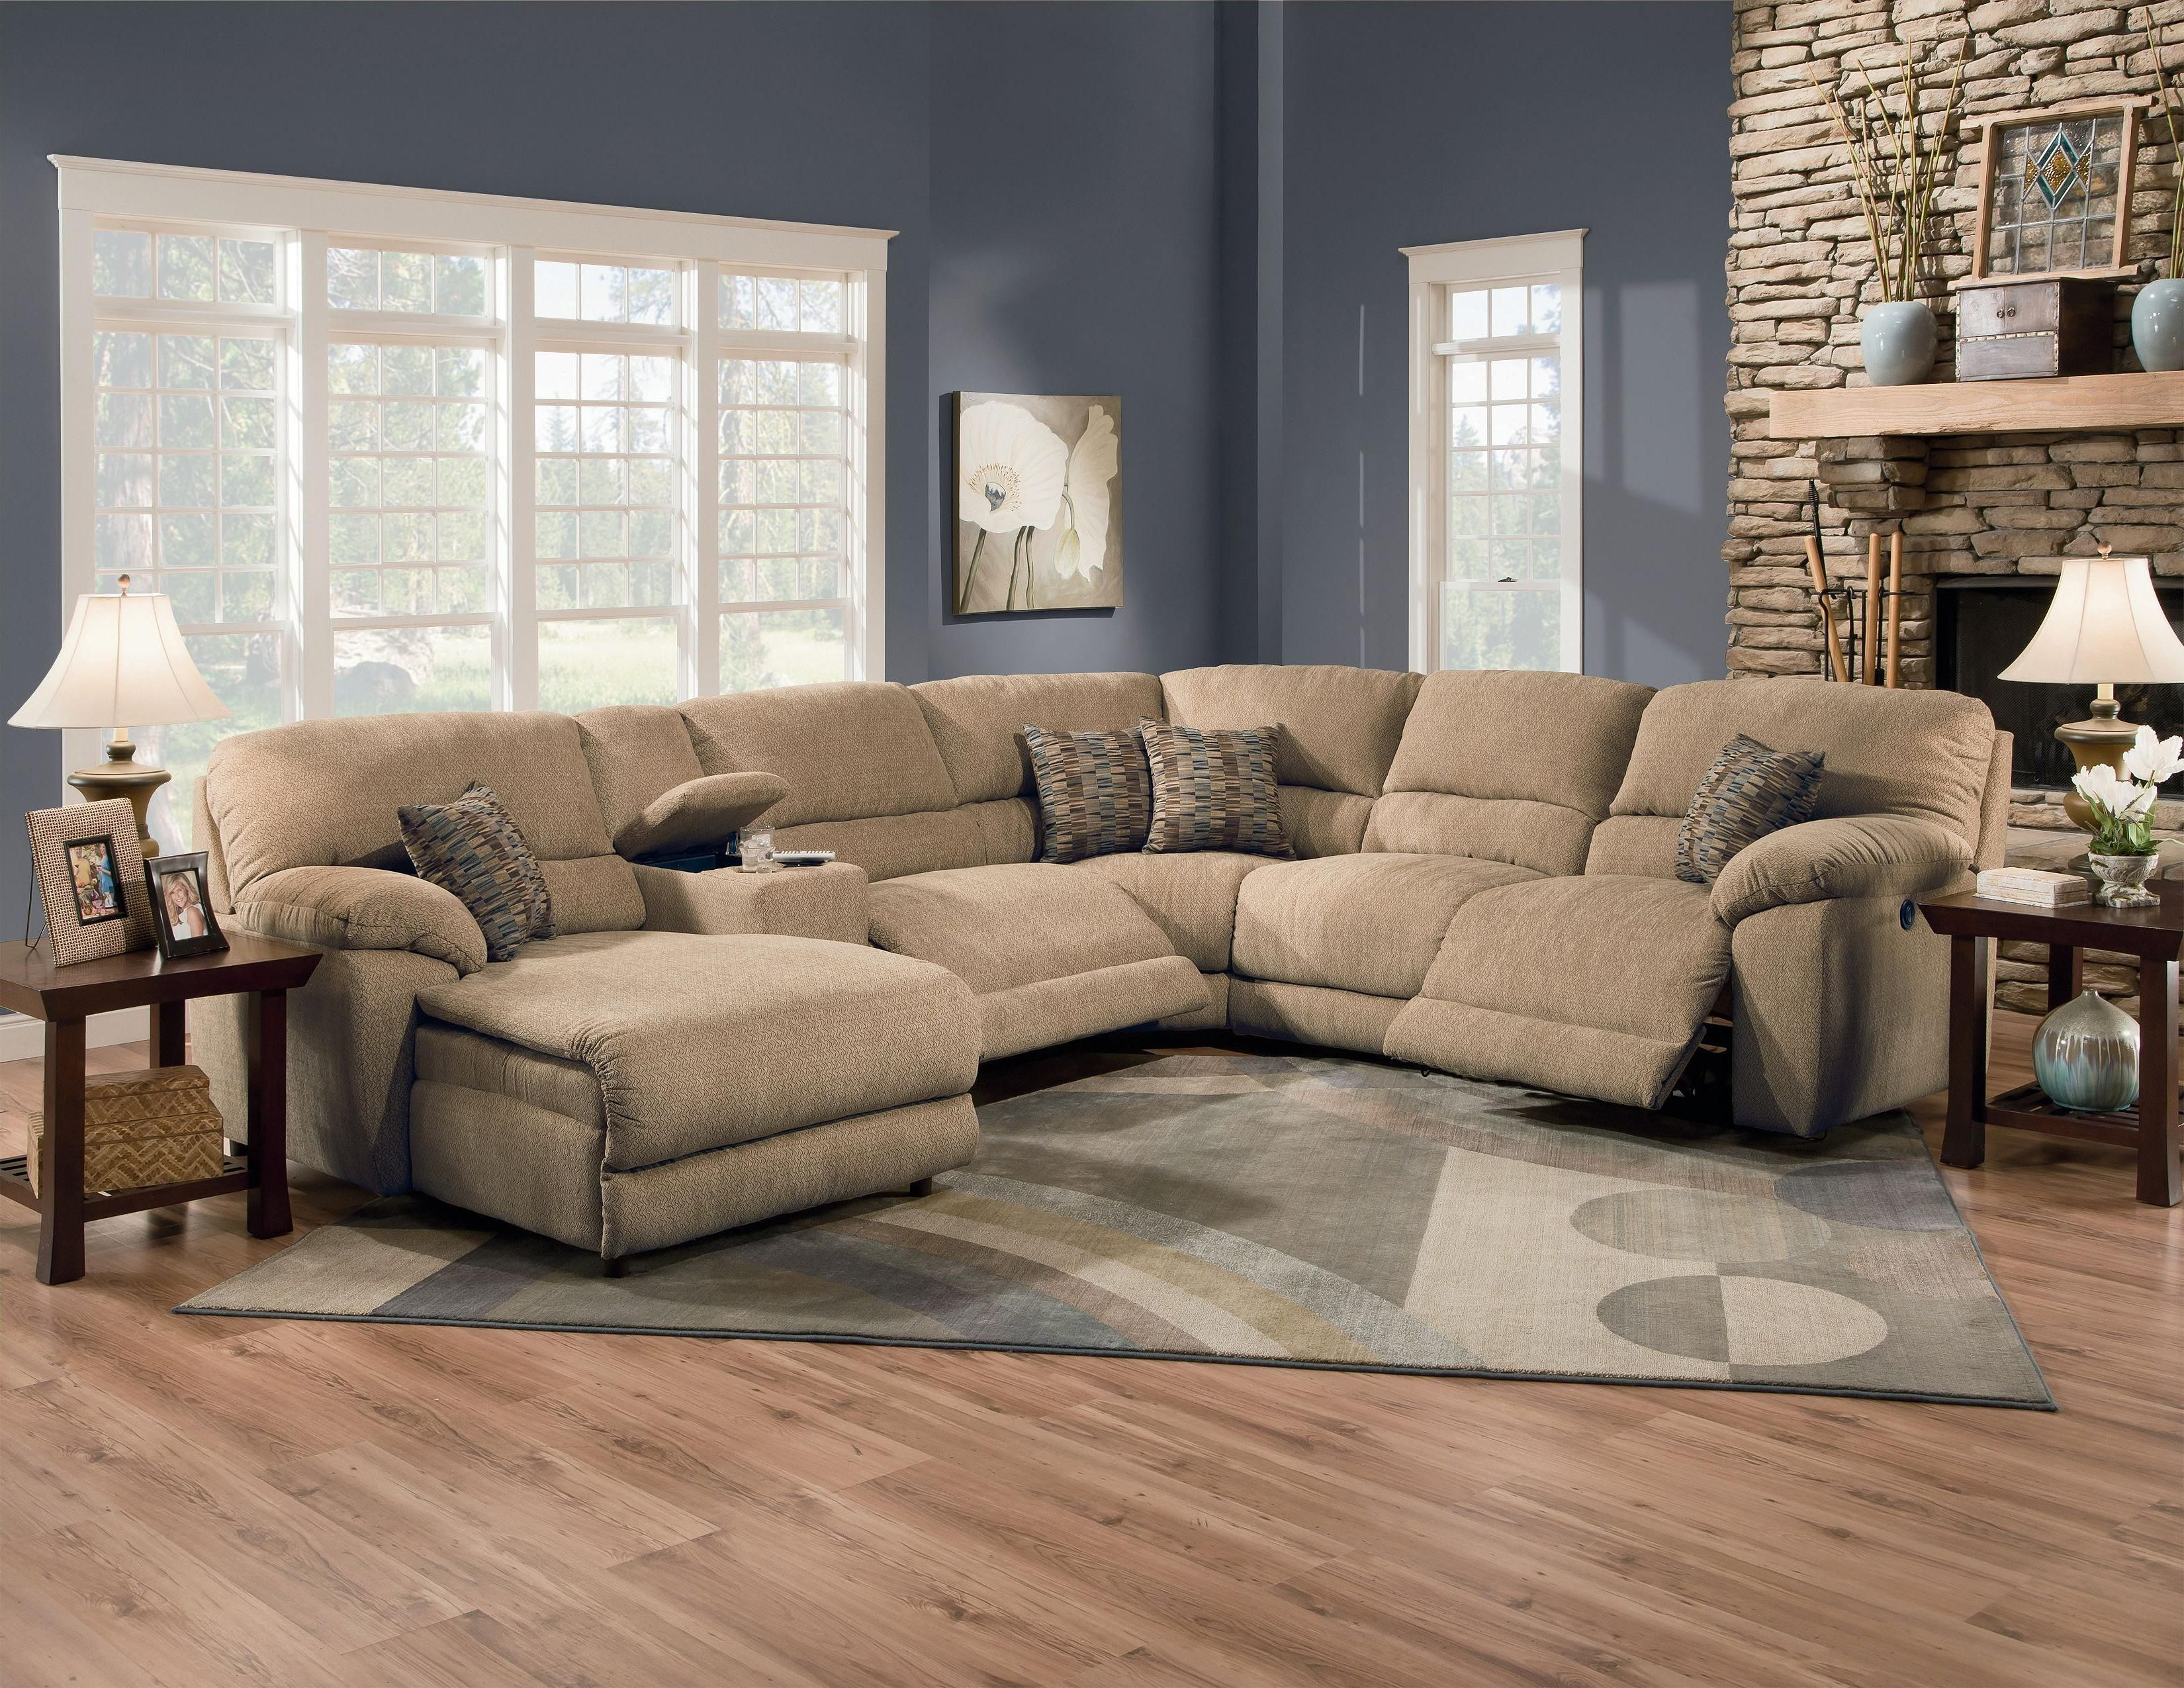 Comfortable Den Furniture Lane Furniture Rivers Collection Featuring Power